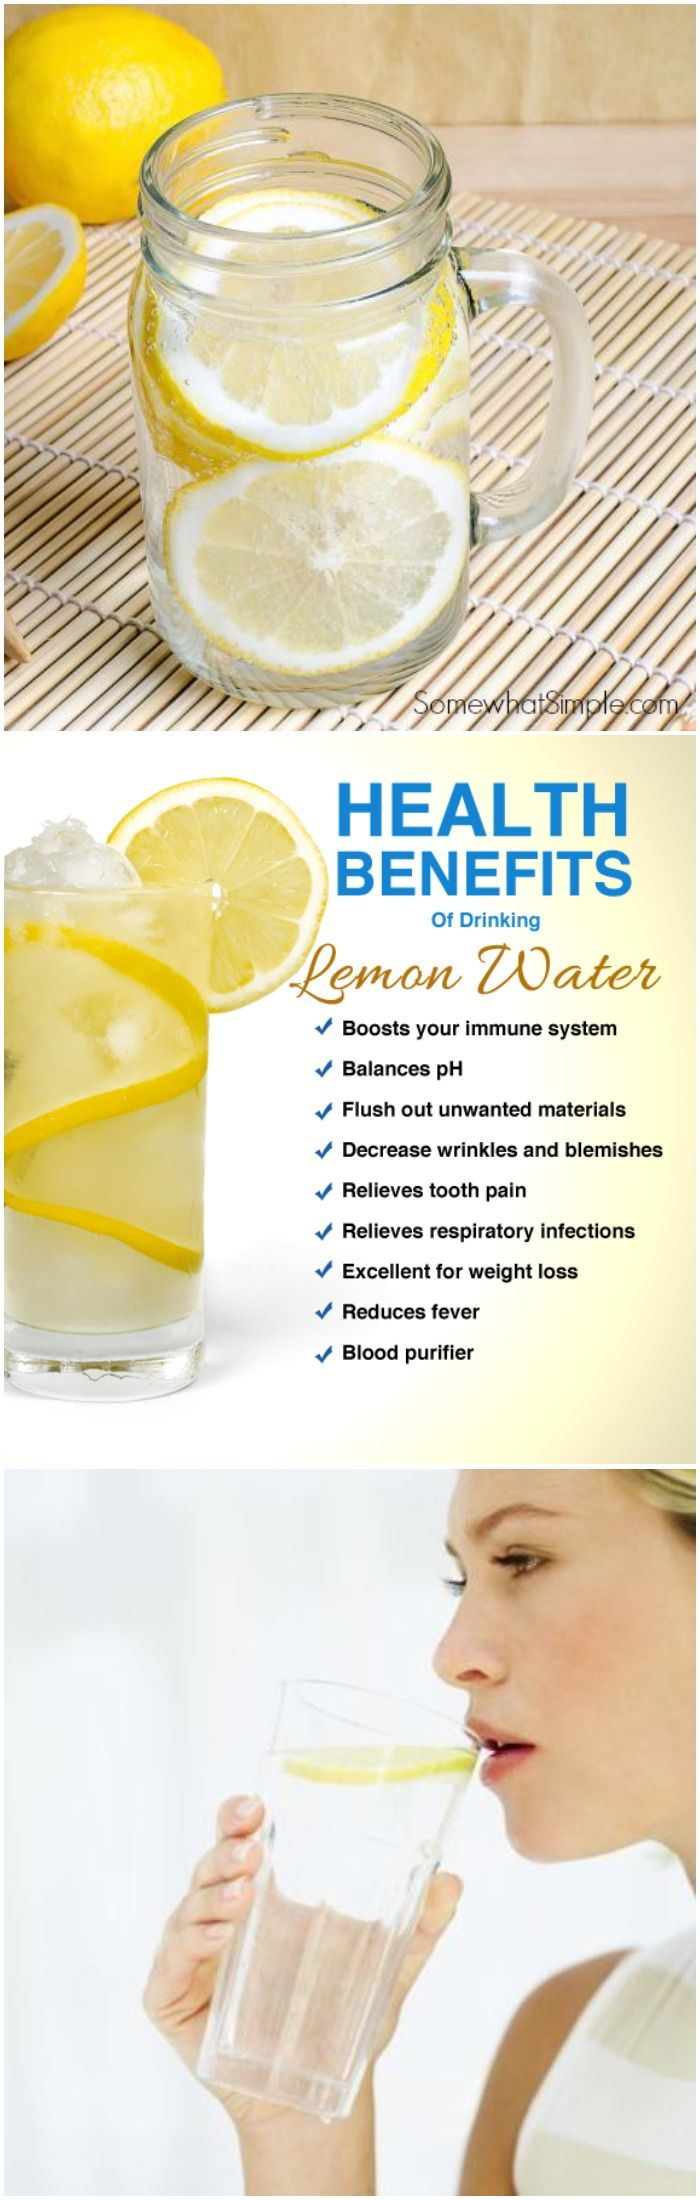 9 Great Reasons You Should Drink Warm Lemon Water Every Morning!!